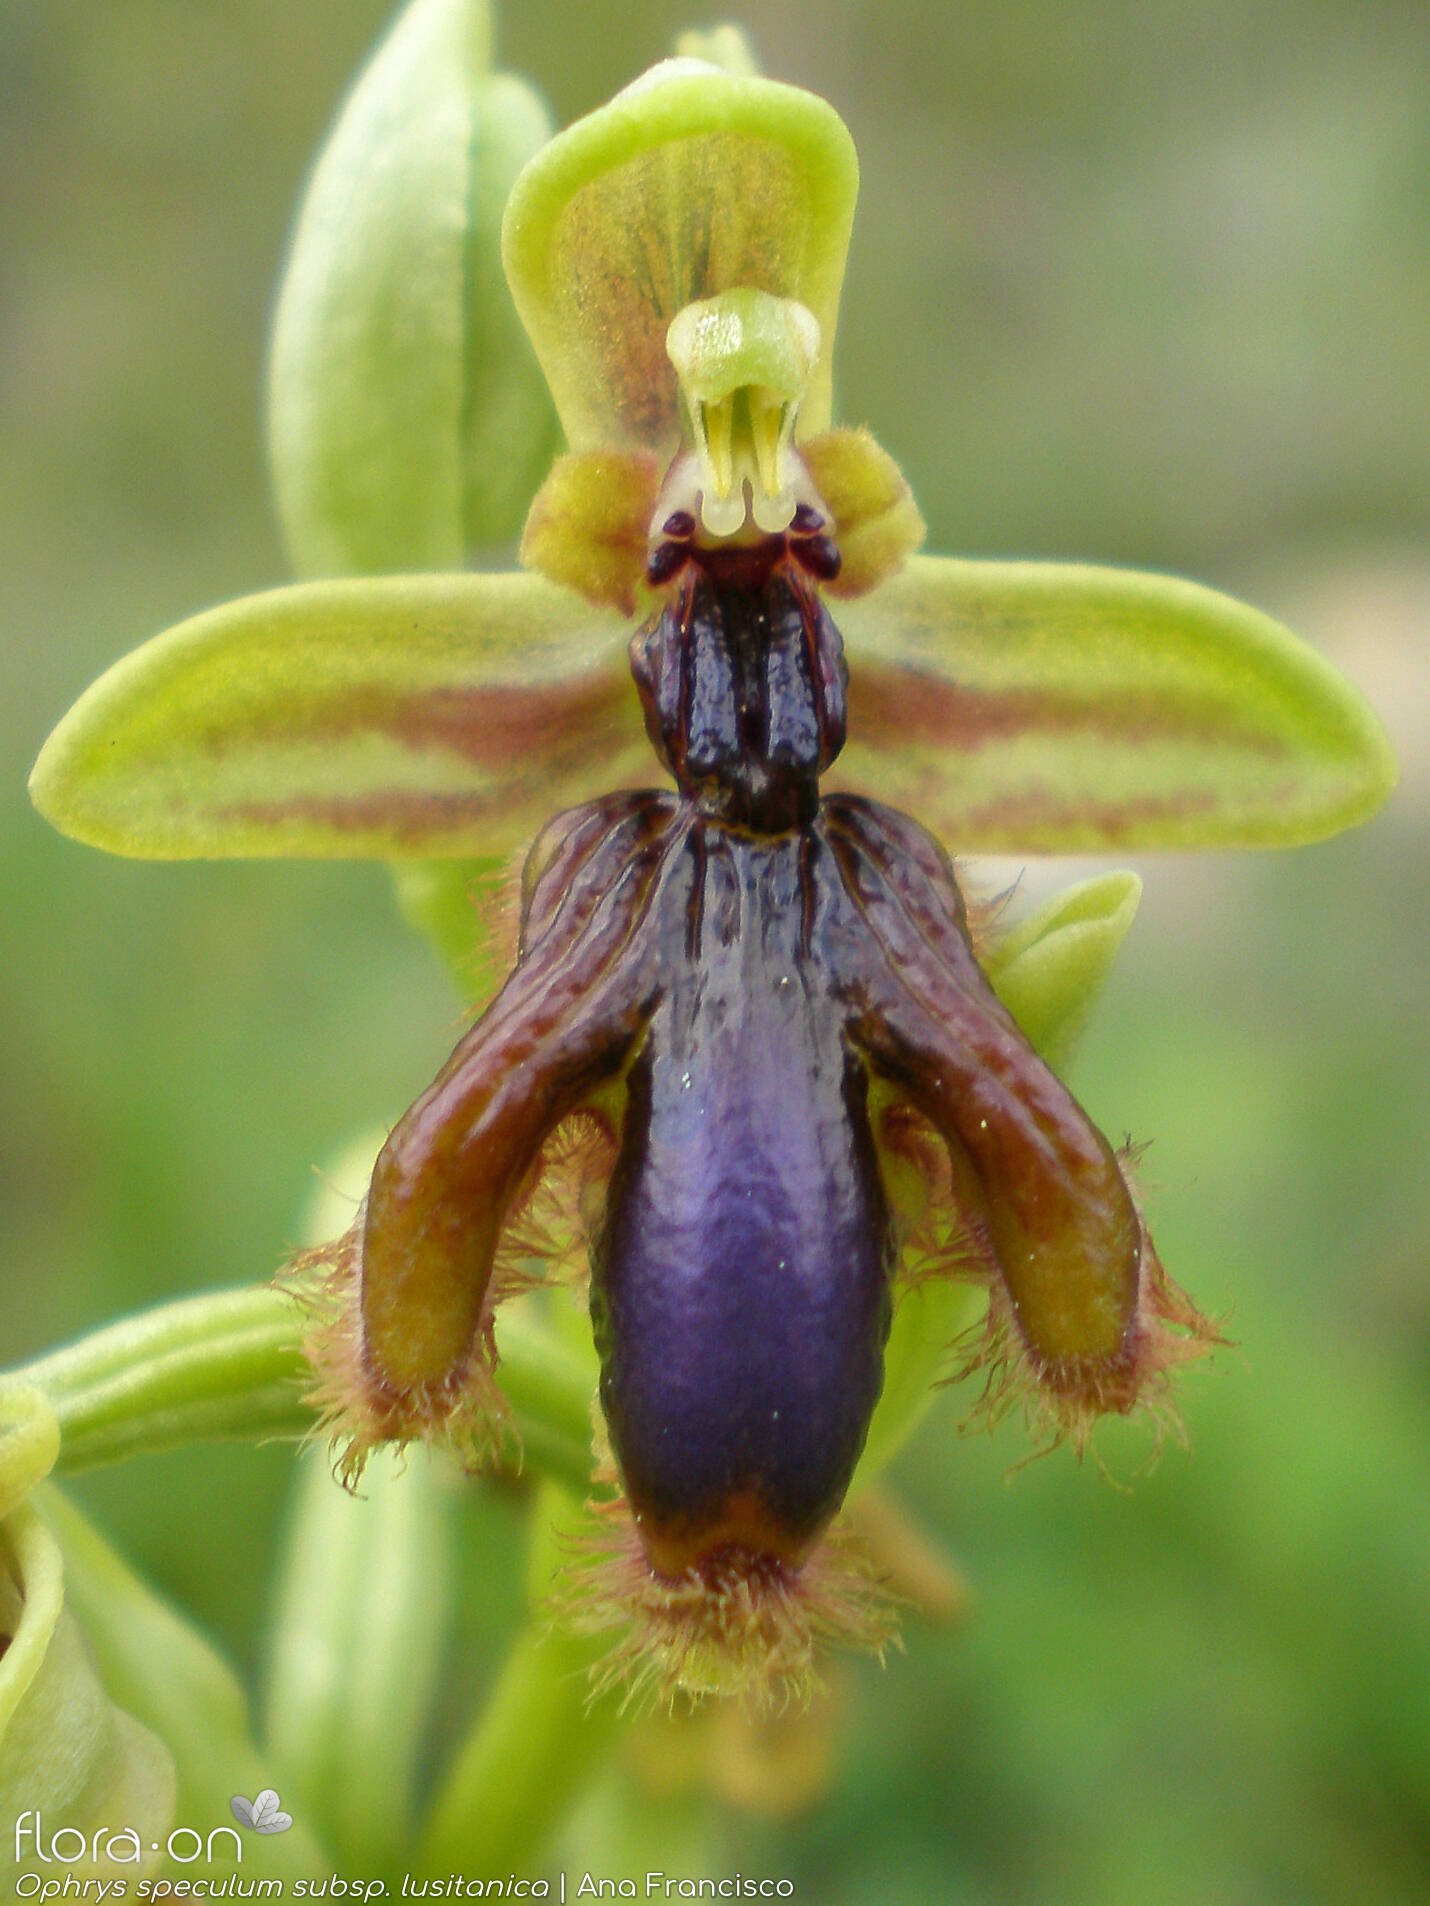 Ophrys speculum - Flor (close-up) | Ana Francisco; CC BY-NC 4.0